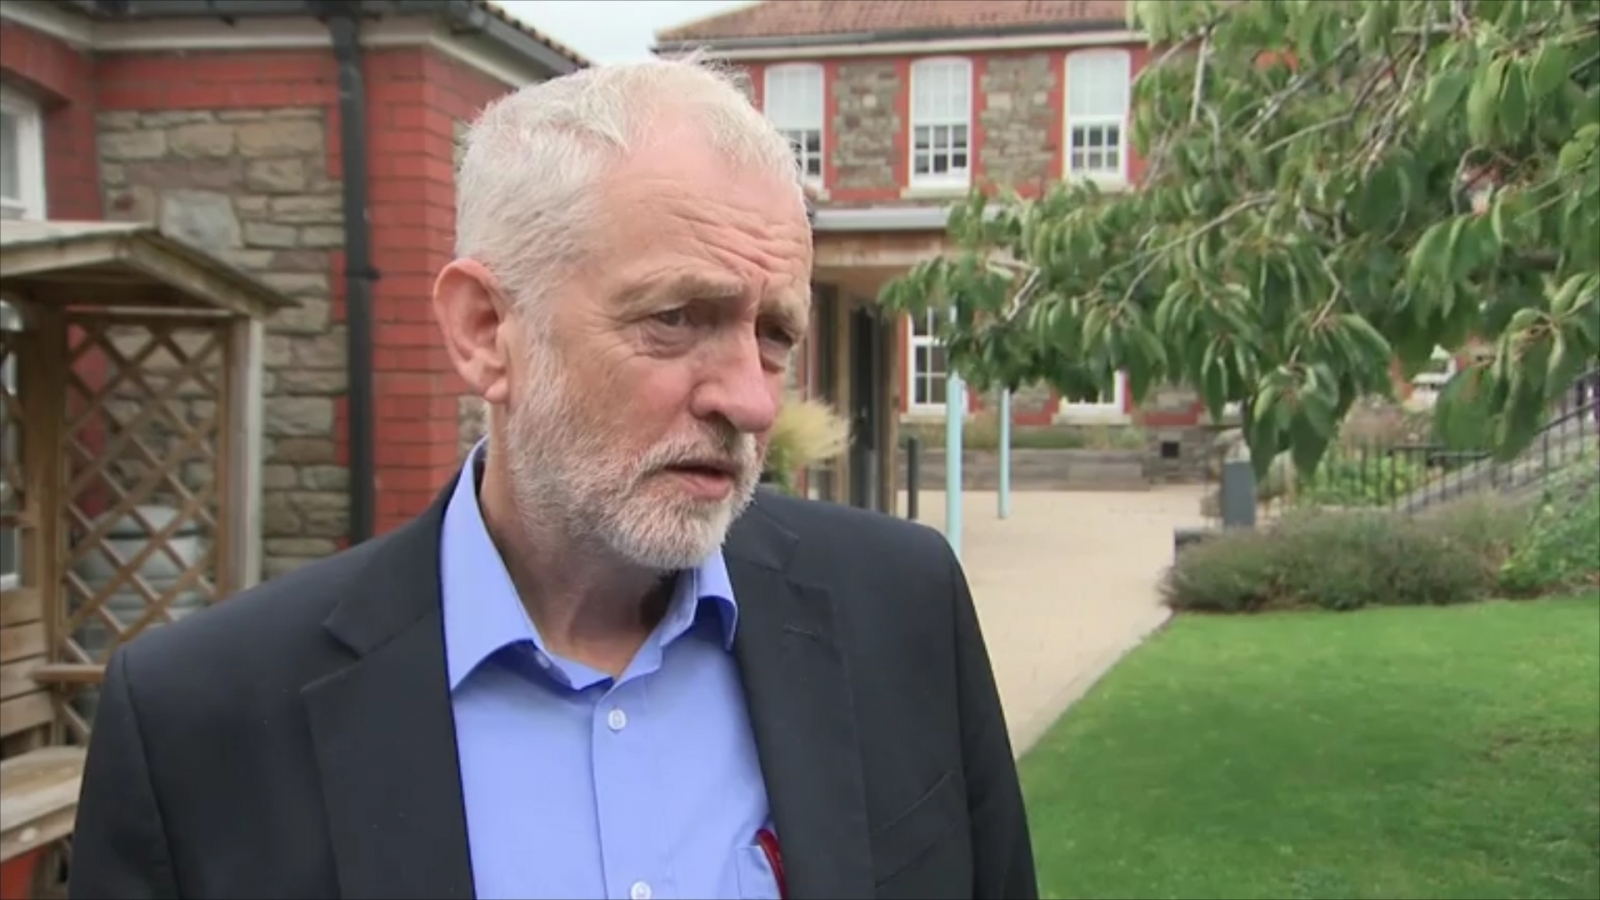 jeremy-corbyn-urges-donald-trump-and-kim-jong-un-to-calm-down-amid-rising-tension